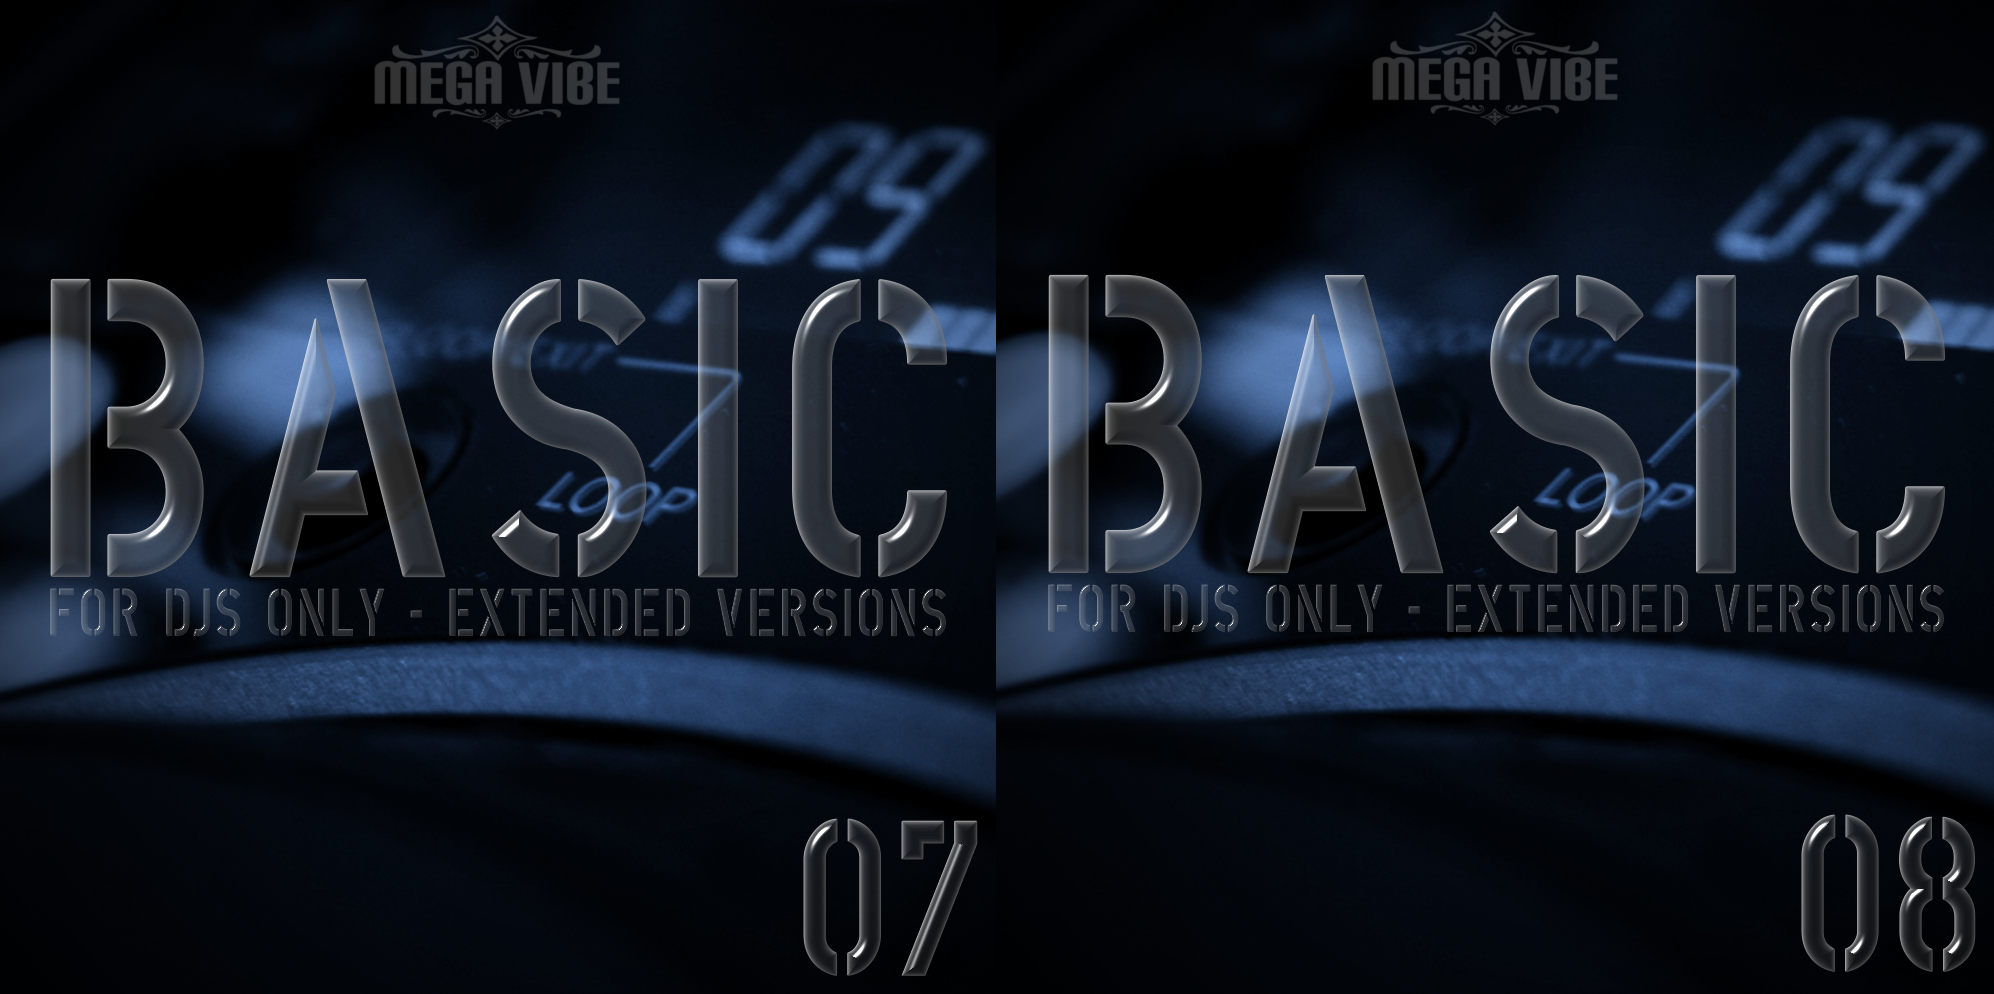 V.A - Mega Vibe Basic Series Vol.7,8 2011 (CD ORIGINAL)